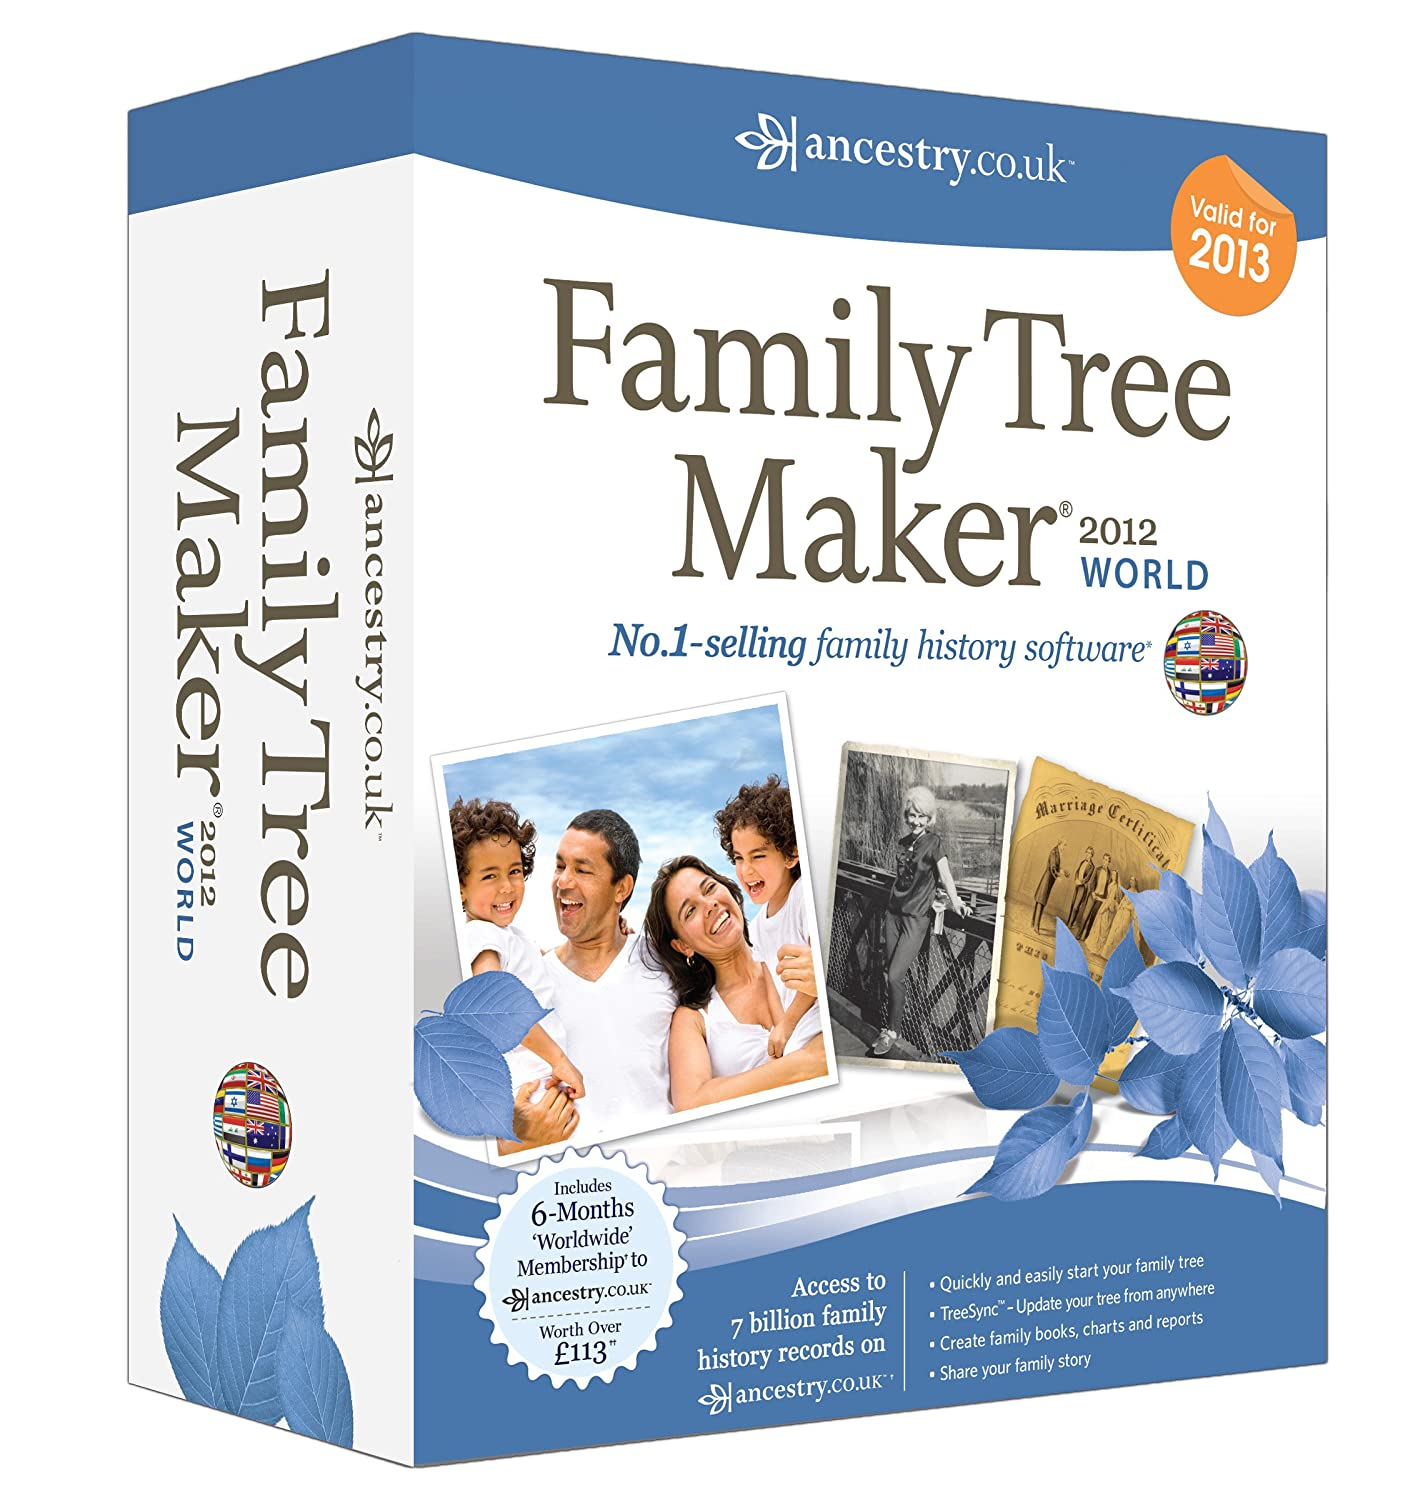 Software to make a family history book